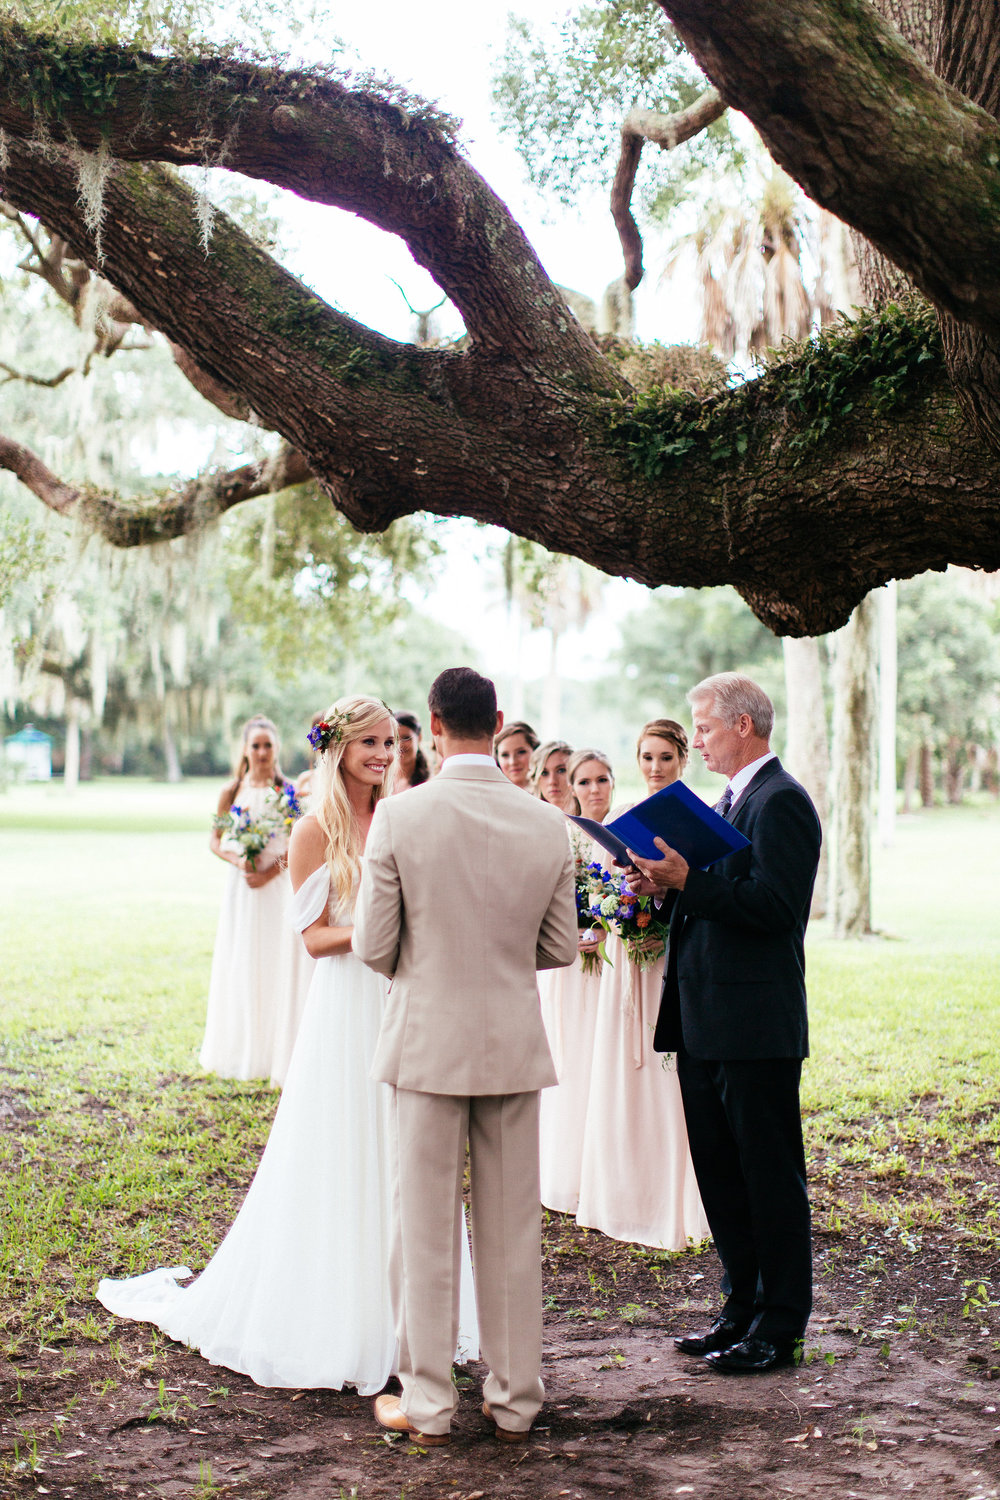 christina-karst-photography-ivory-and-beau-bridal-boutique-sarah-seven-lafayette-boho-bride-boho-bridal-boutique-indie-bridal-boutique-savannah-bridal-boutique-savannah-wedding-dresses-savannah-bridal-gowns-11.jpg